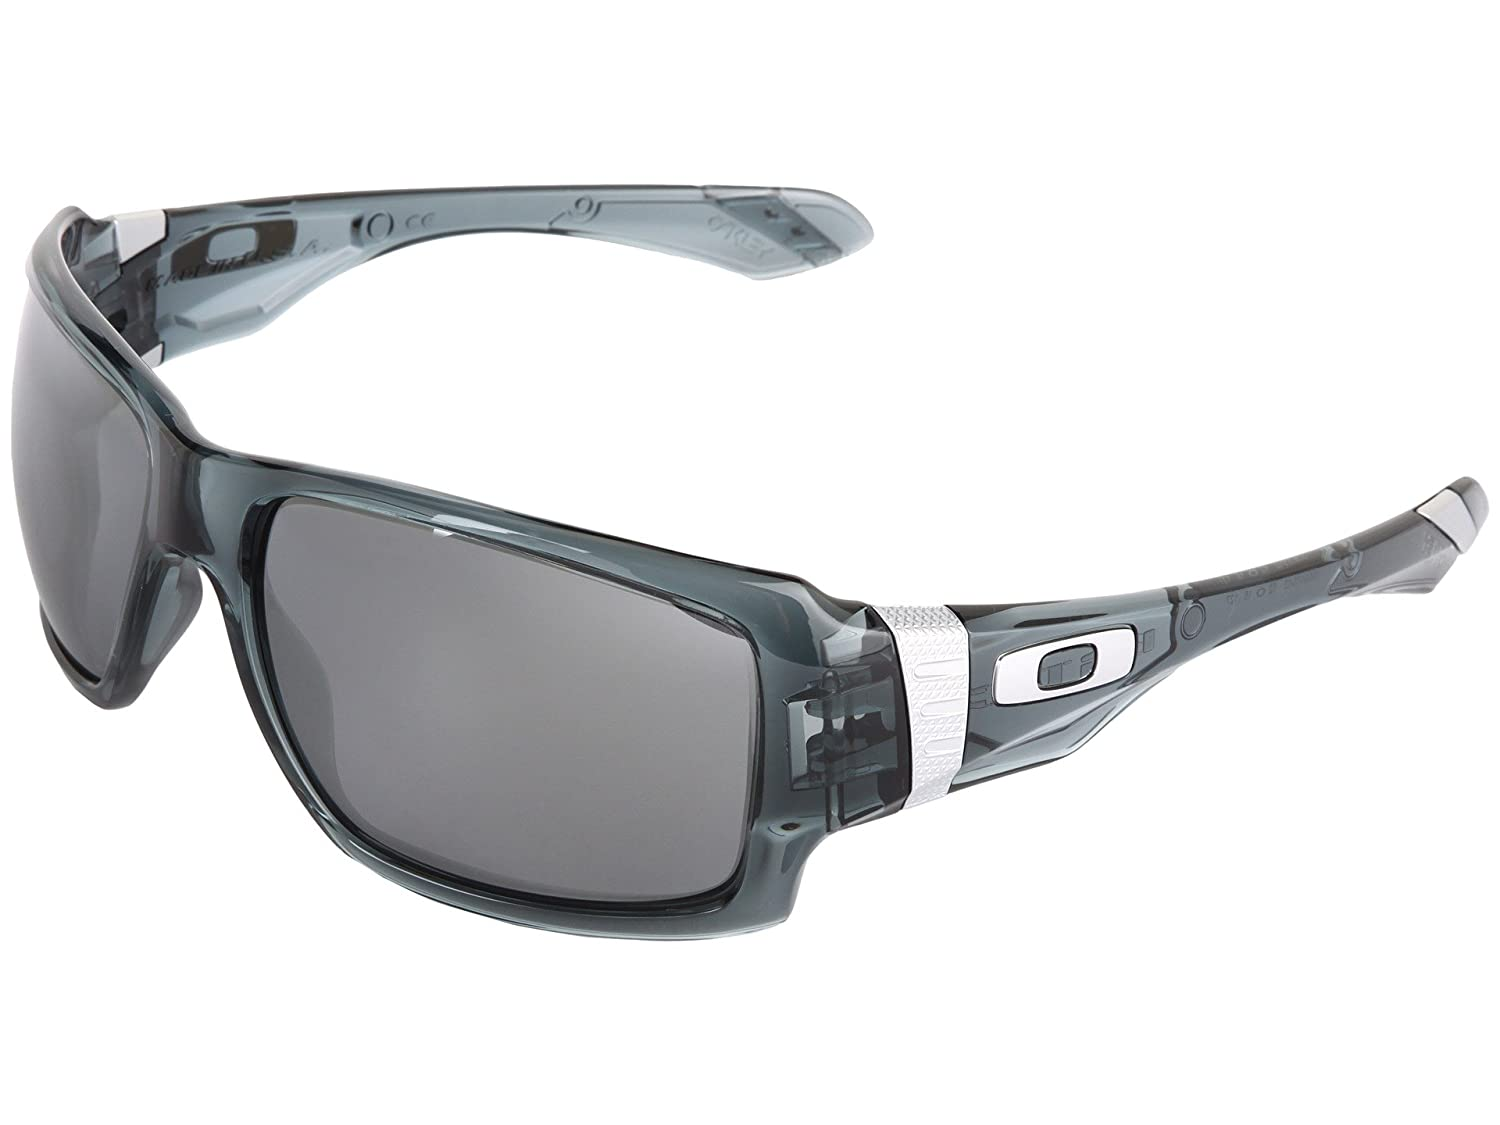 dd379b4363 Where To Buy Oakley Sunglasses In Toronto « Heritage Malta